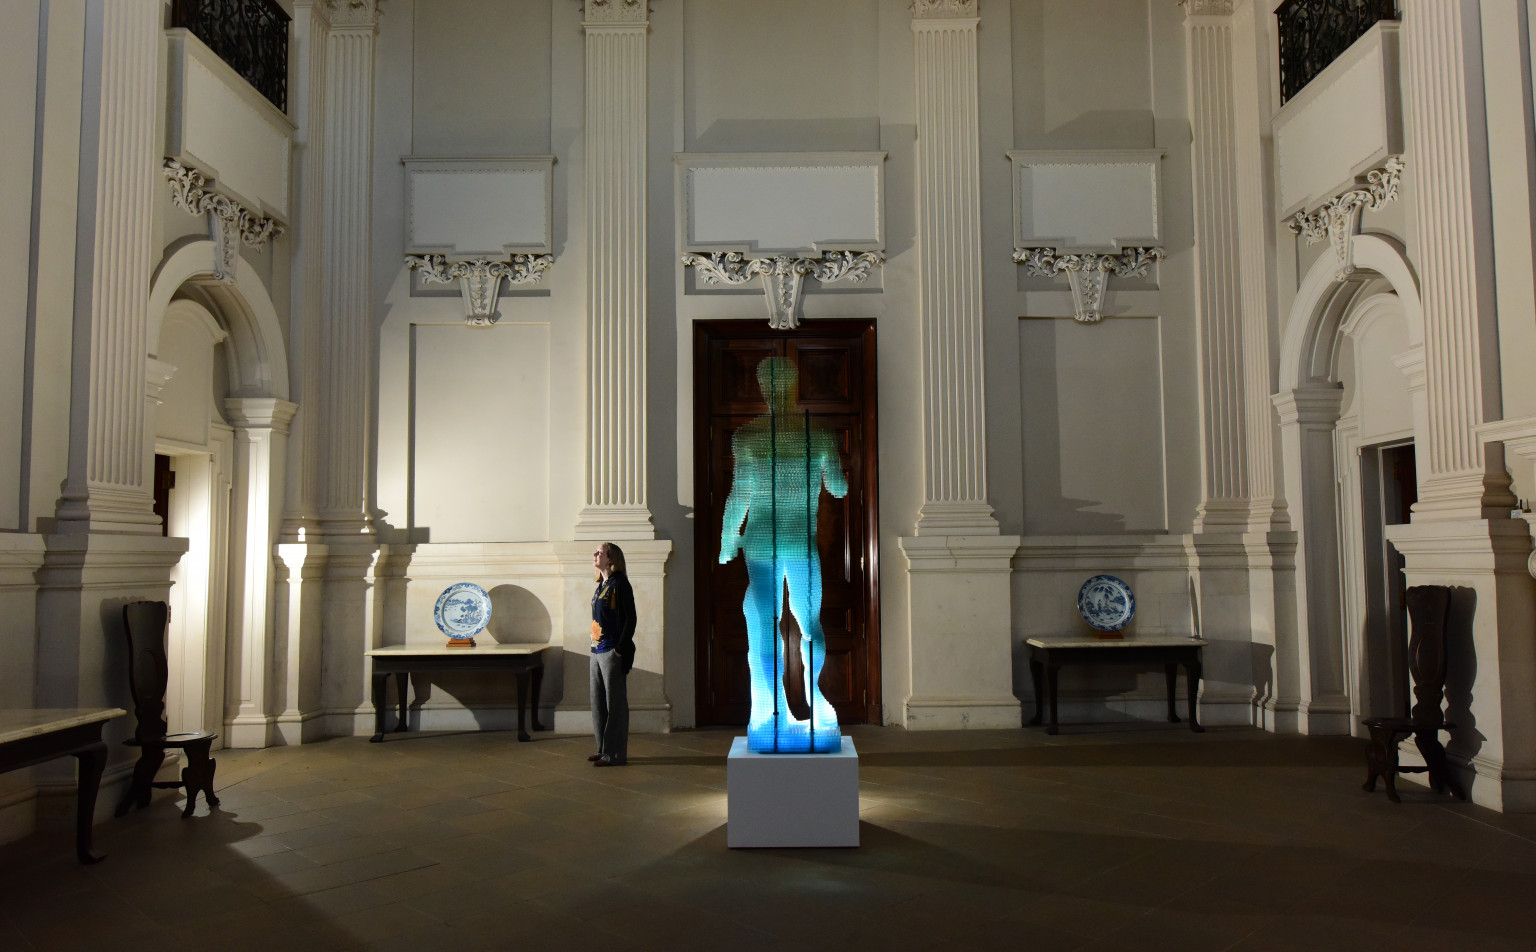 Doryphoros stands tall in the Great Hall